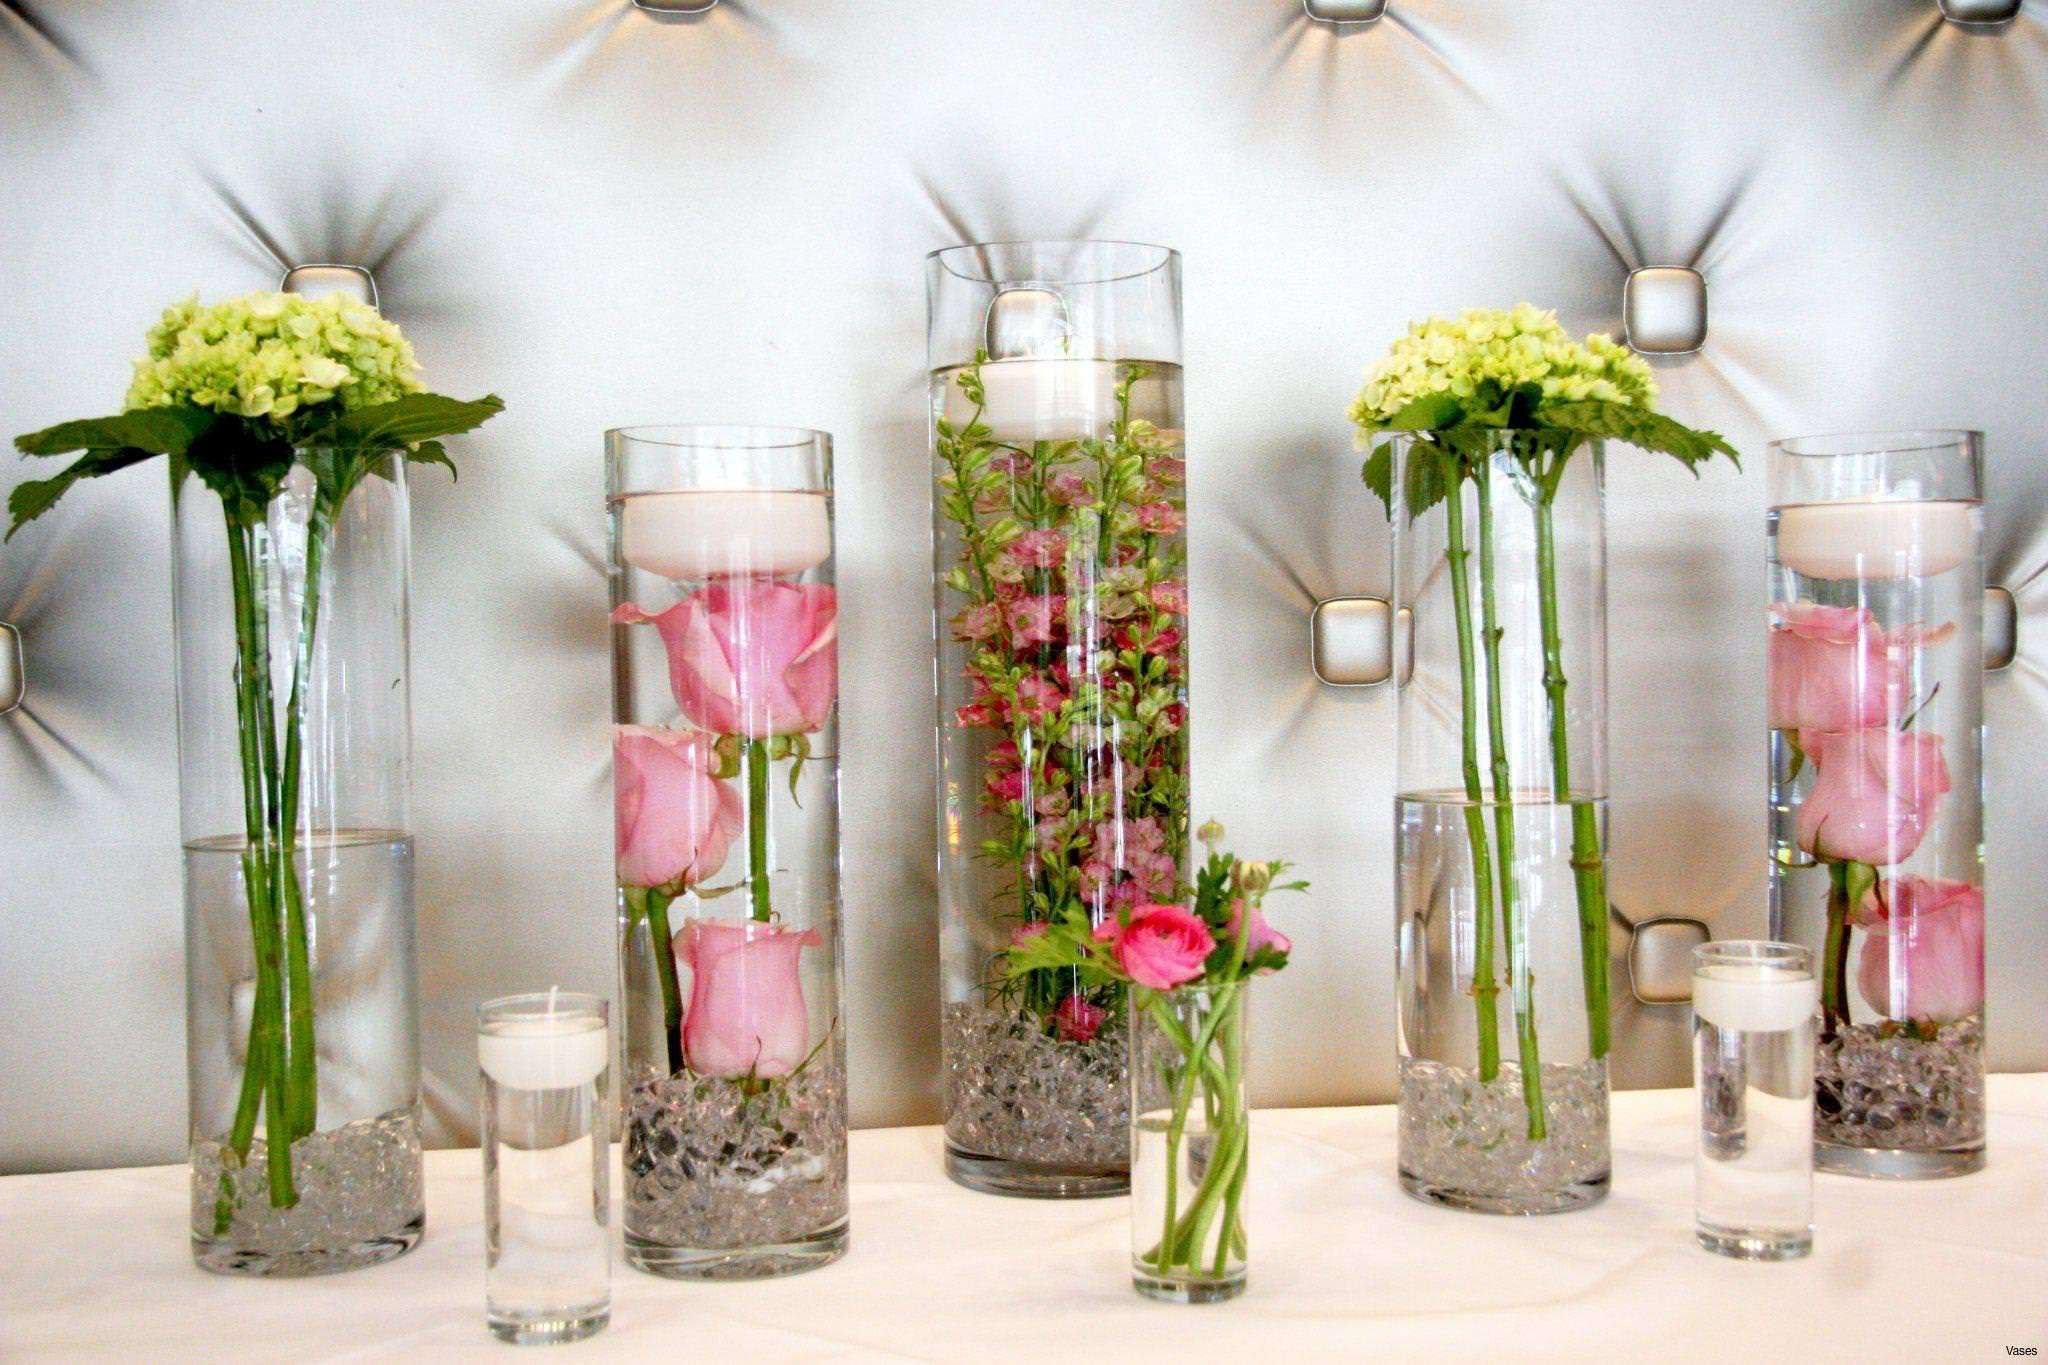 family dollar flower vases of 24 types of vases for flowers the weekly world with regard to 46 inspirational floral arrangement ideas image